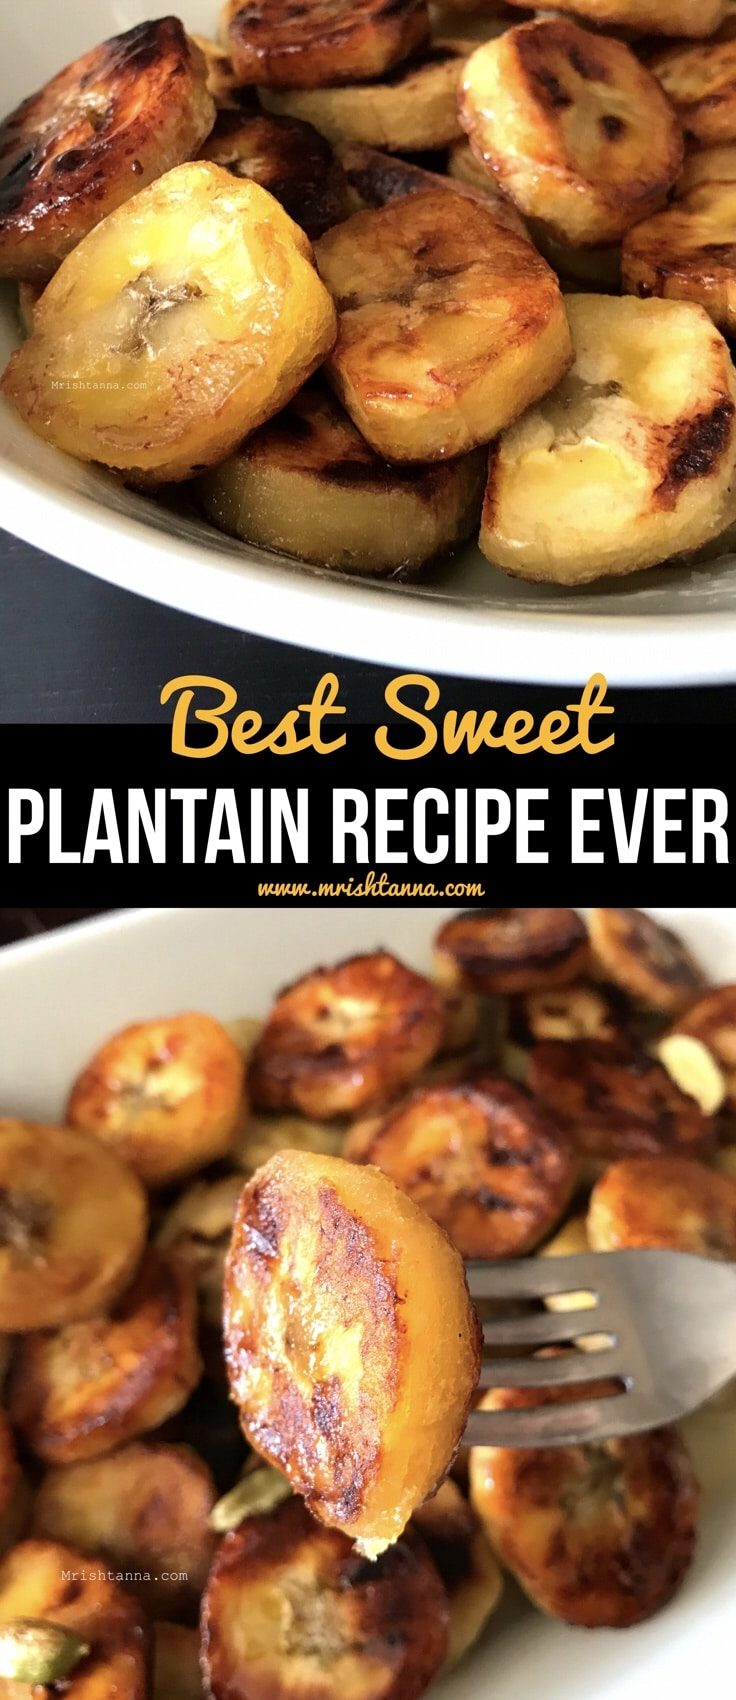 Best Sweet Plantain Recipe Ever